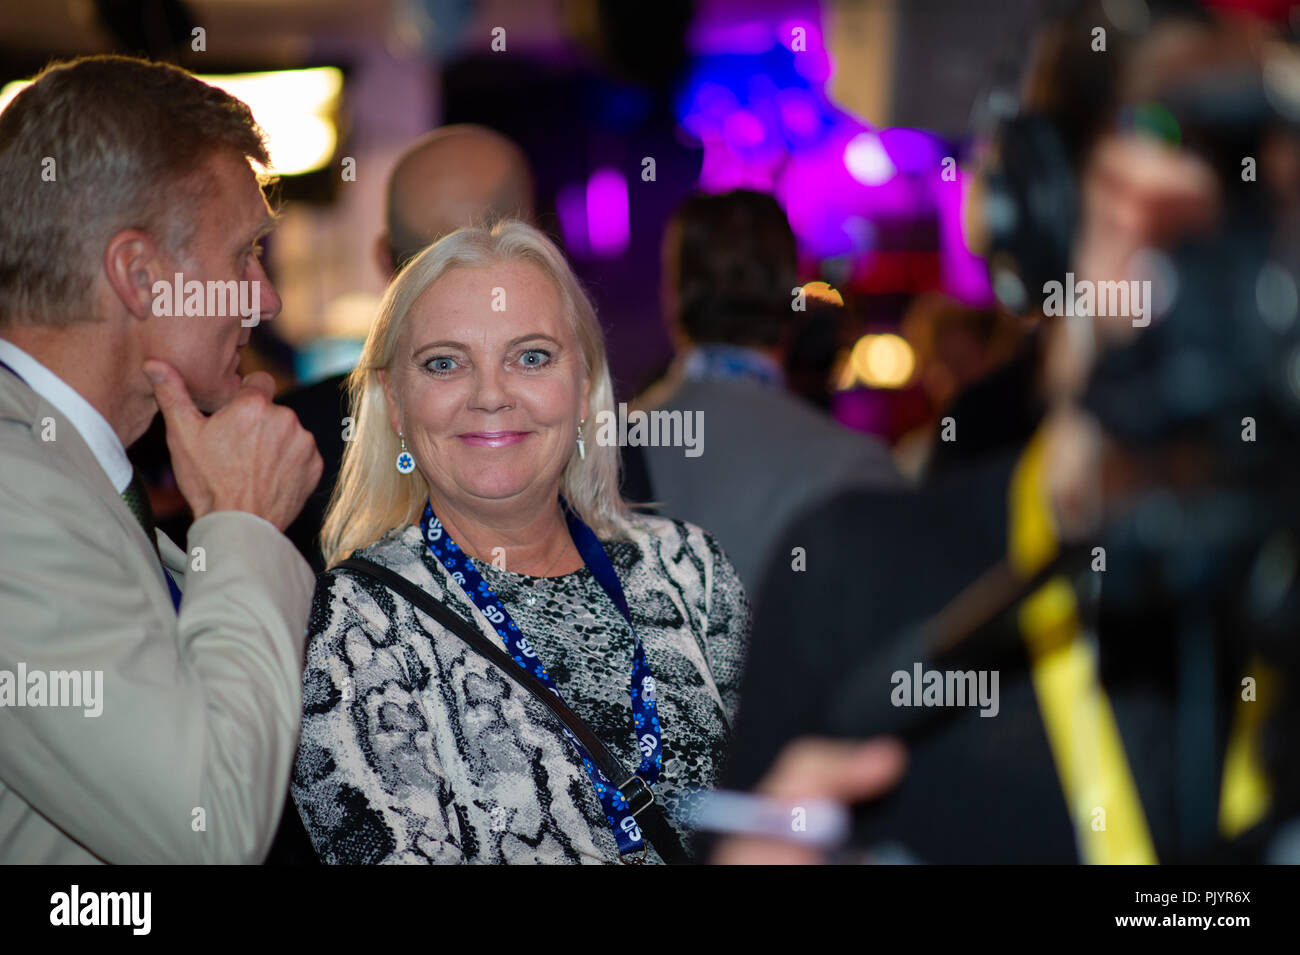 Stockholm, Sweden, September 9, 2018. Swedish General Election 2018.  Election Night Watch Party for Sweden Democrats (SD) in central Stockholm, Sweden. Kristina Winberg (SD). Credit: Barbro Bergfeldt/Alamy Live News Stock Photo